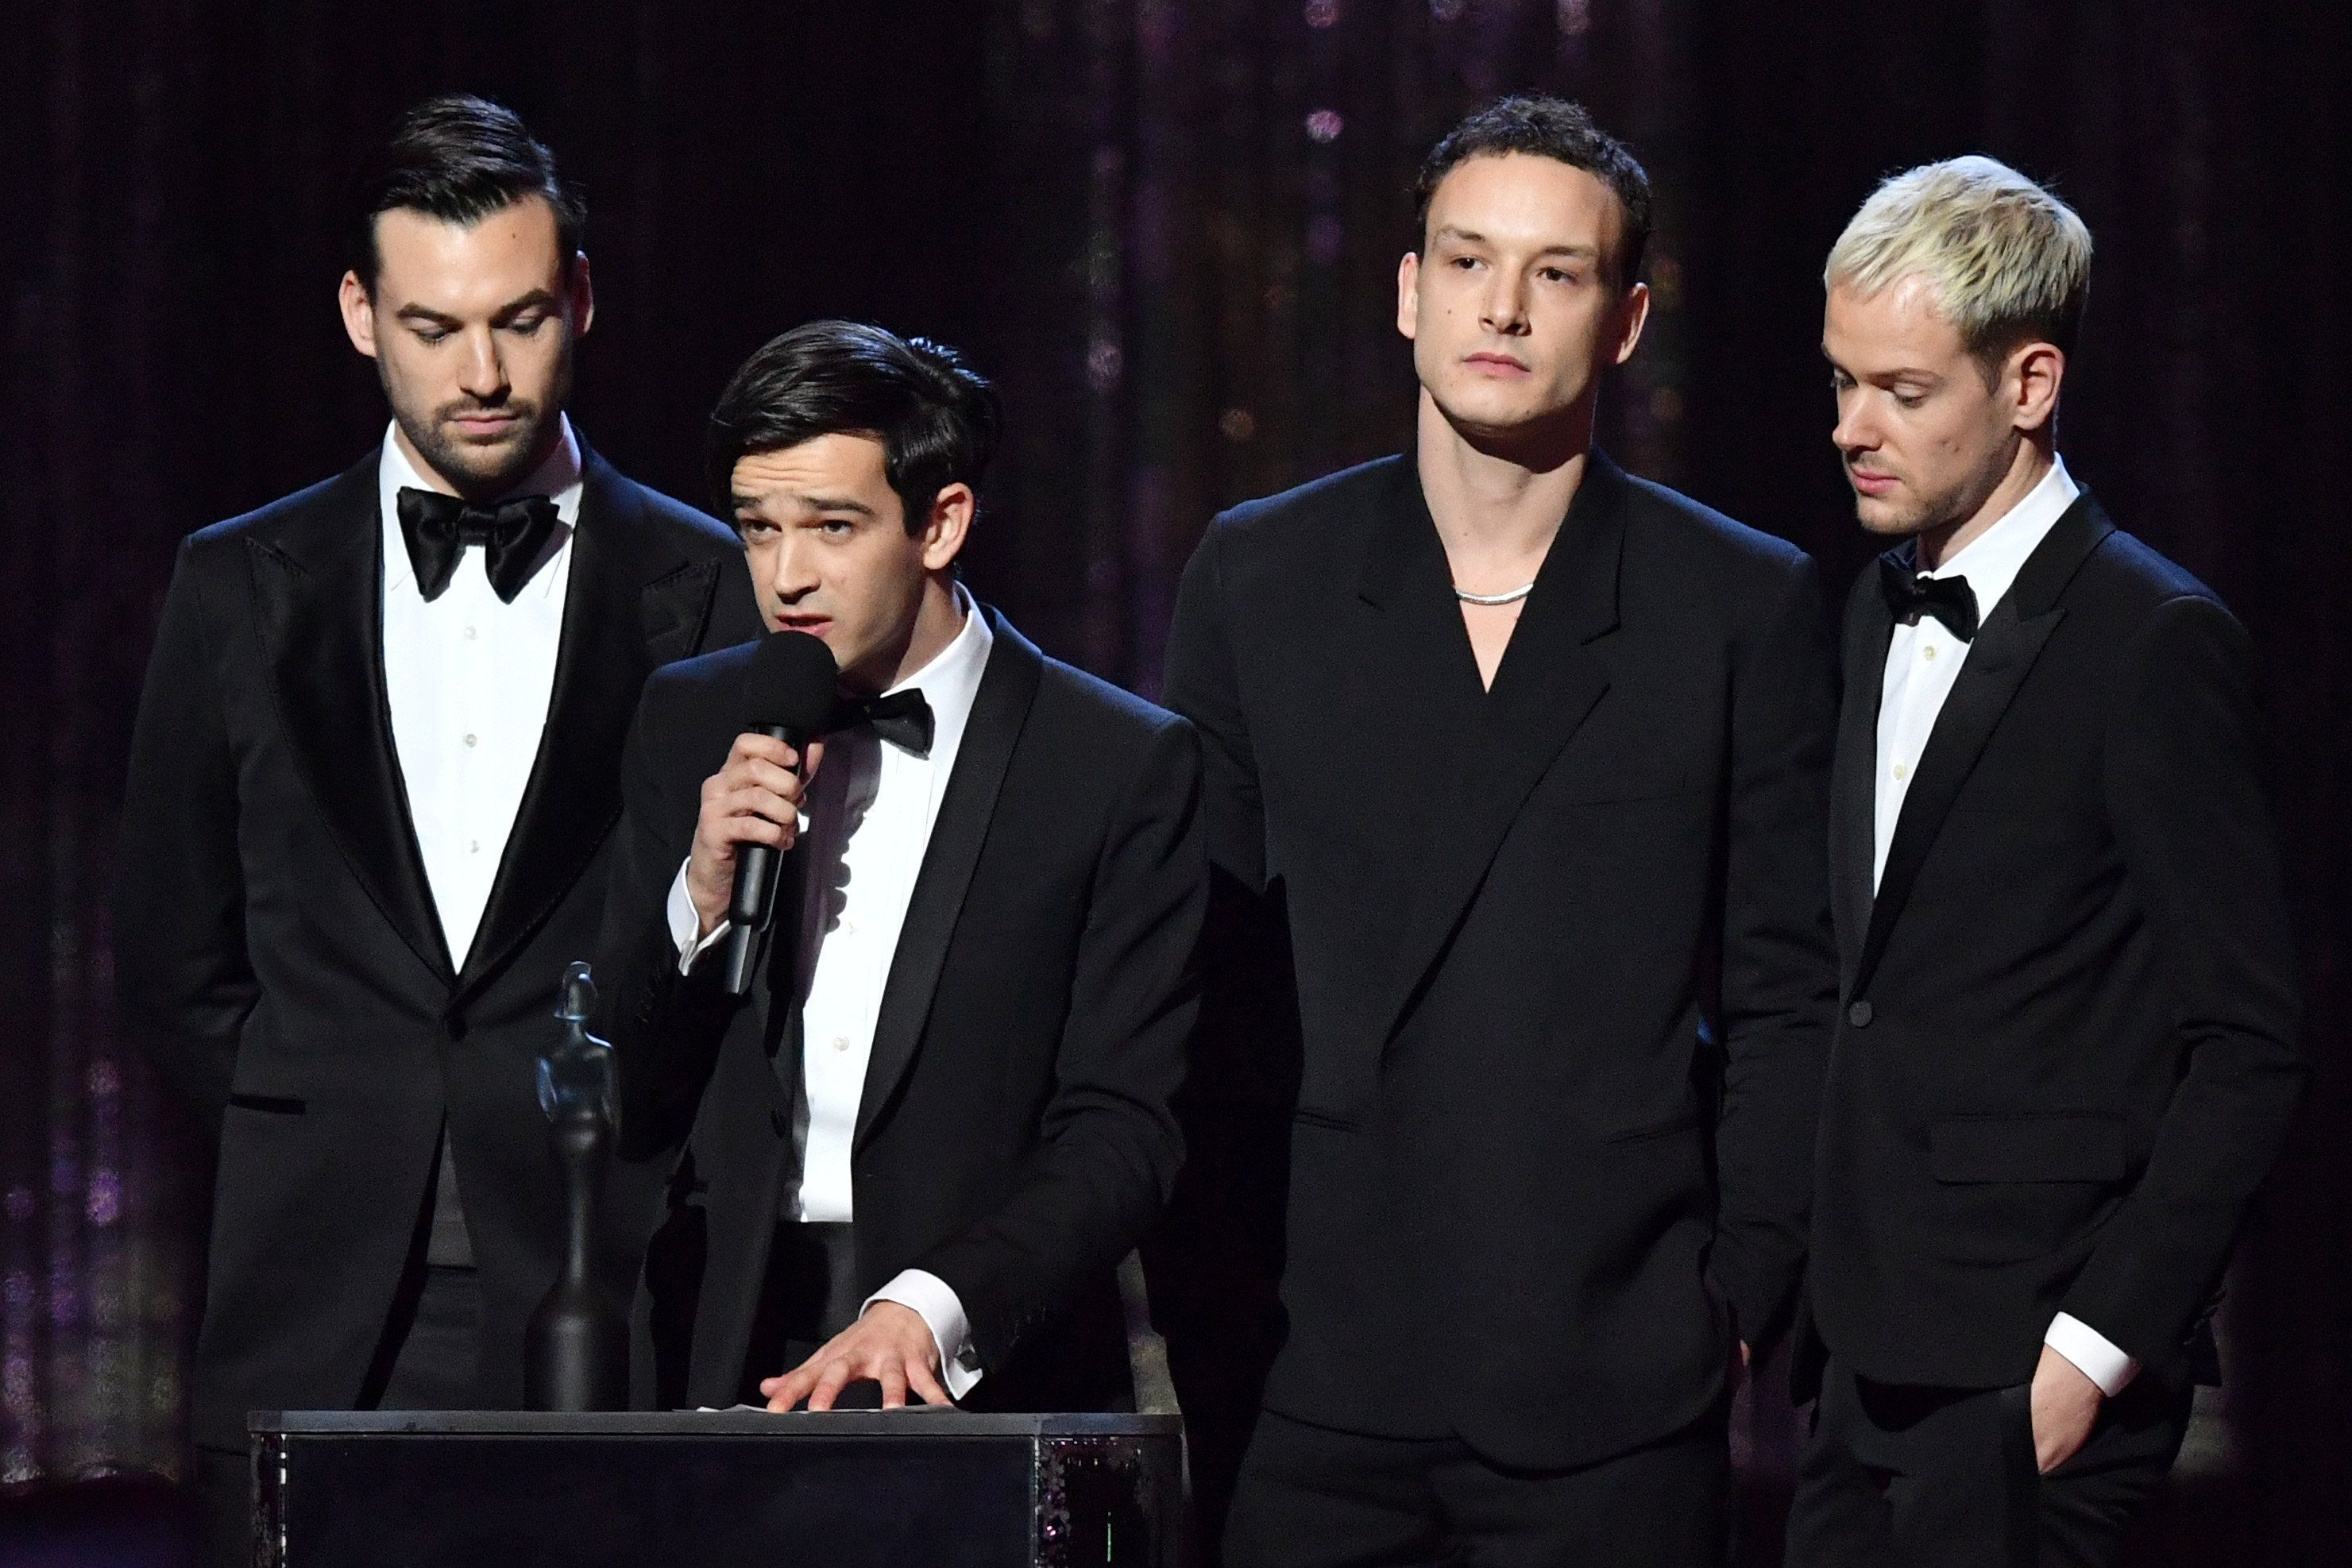 The 1975 And Calvin Harris Lead The Winners At This Year's Brit